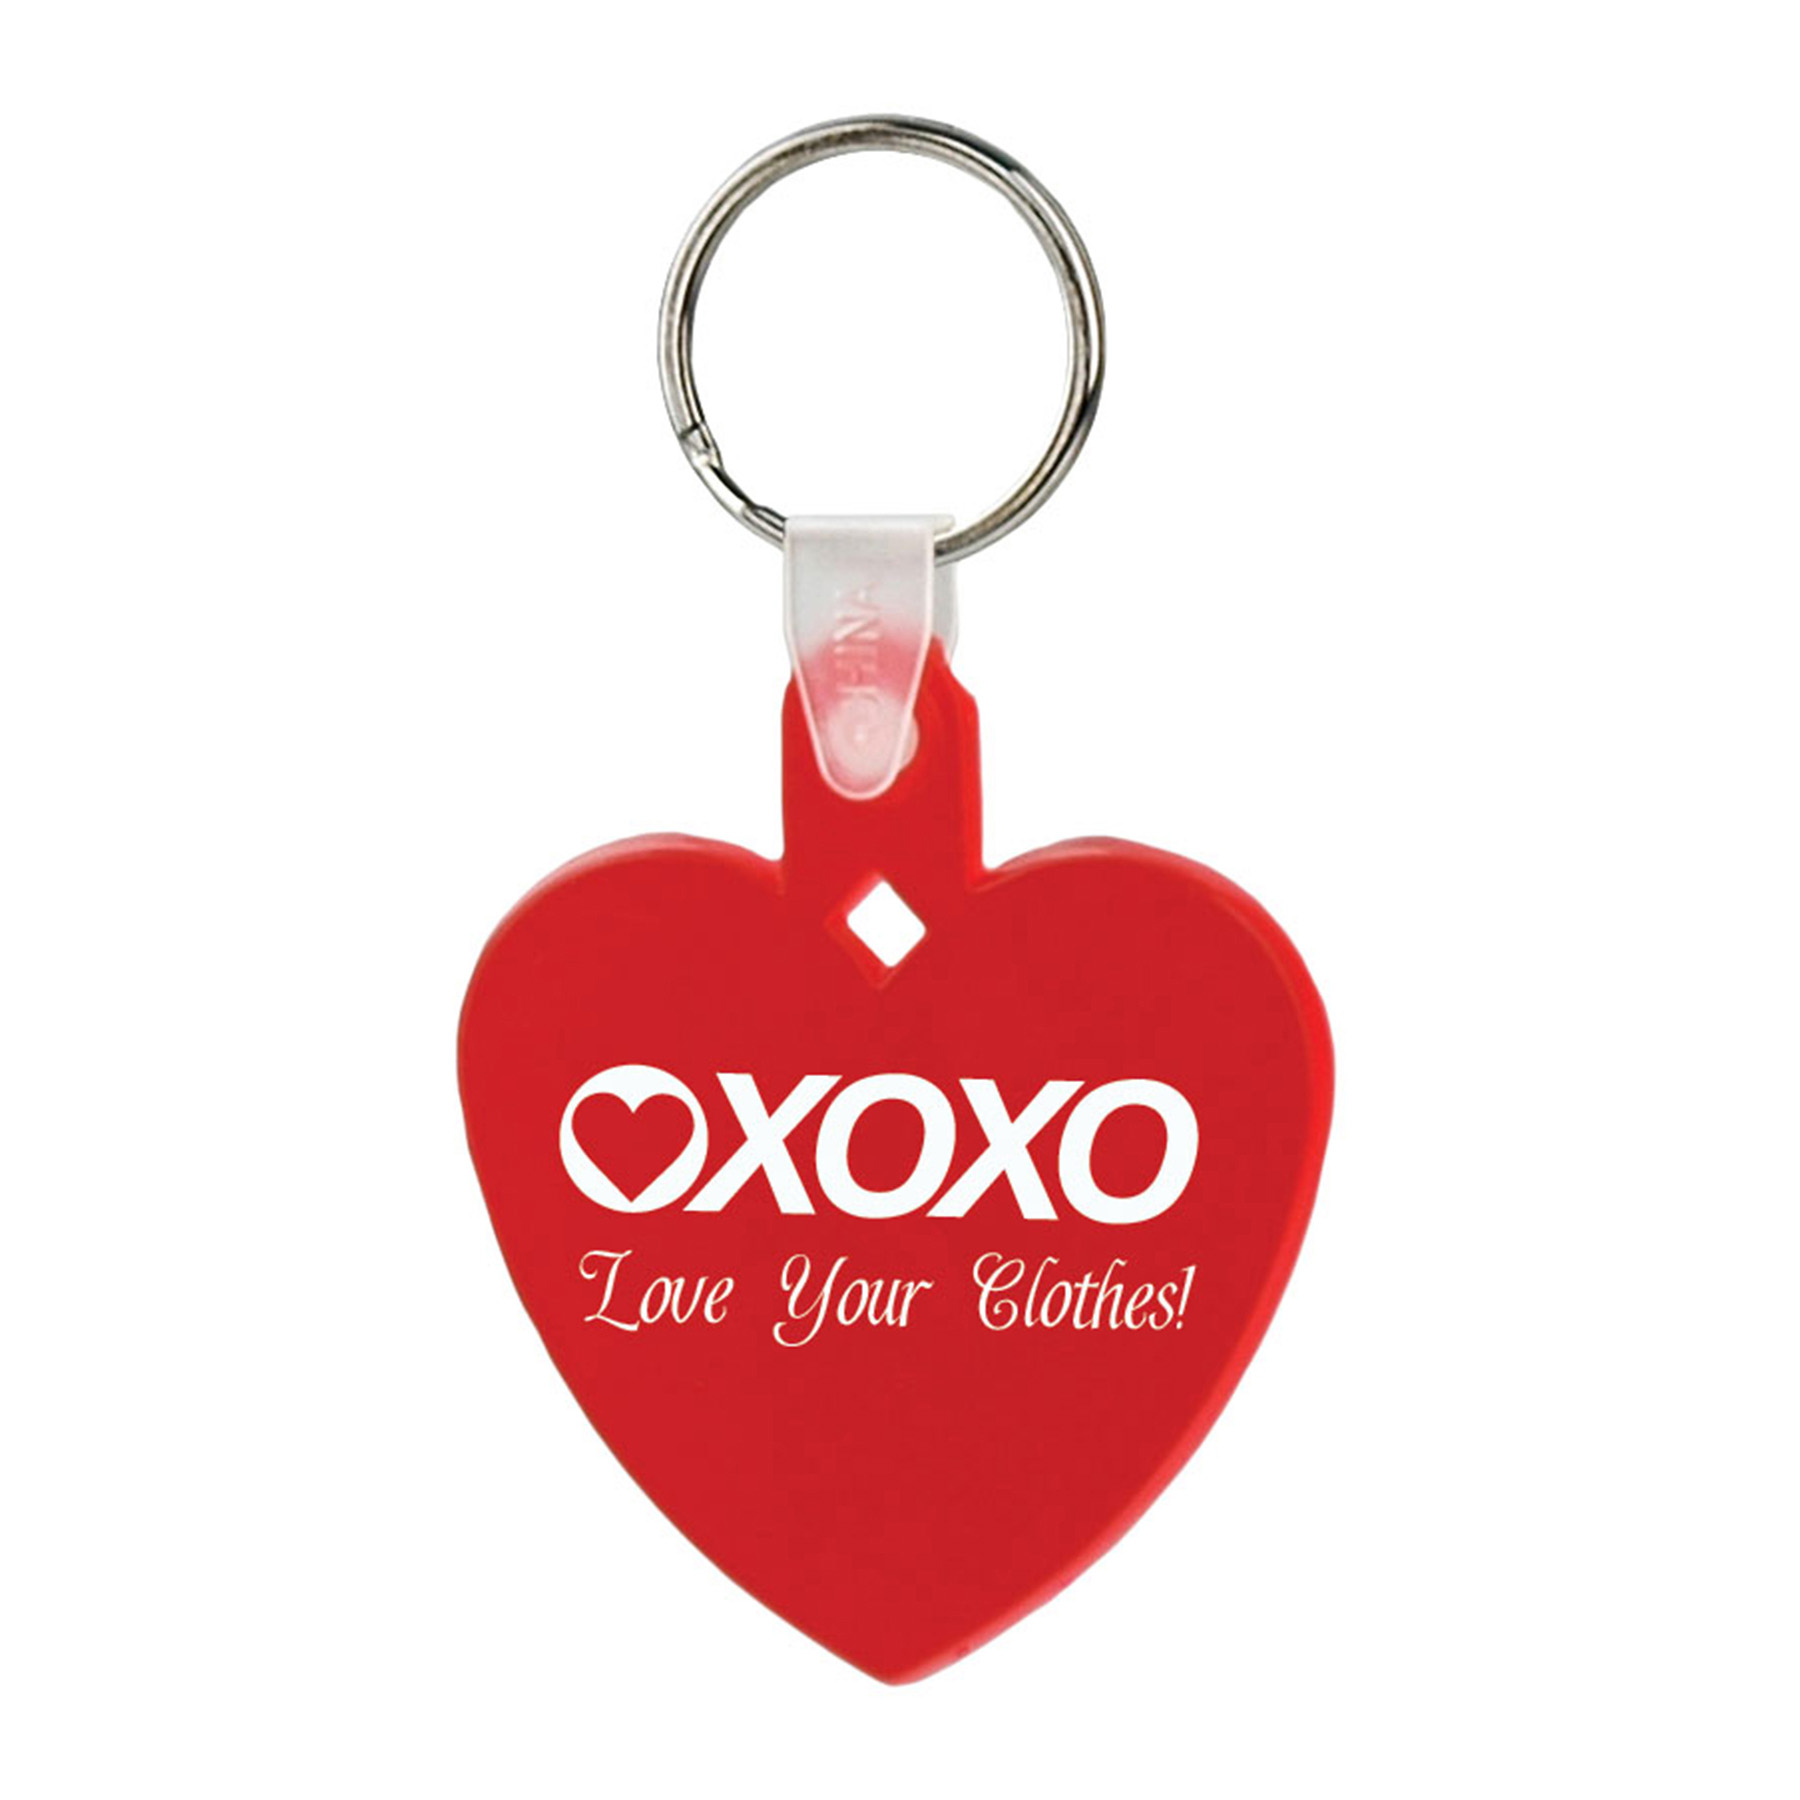 Soft Squeezable Key Tag (Heart), 2106-K, One Colour Imprint